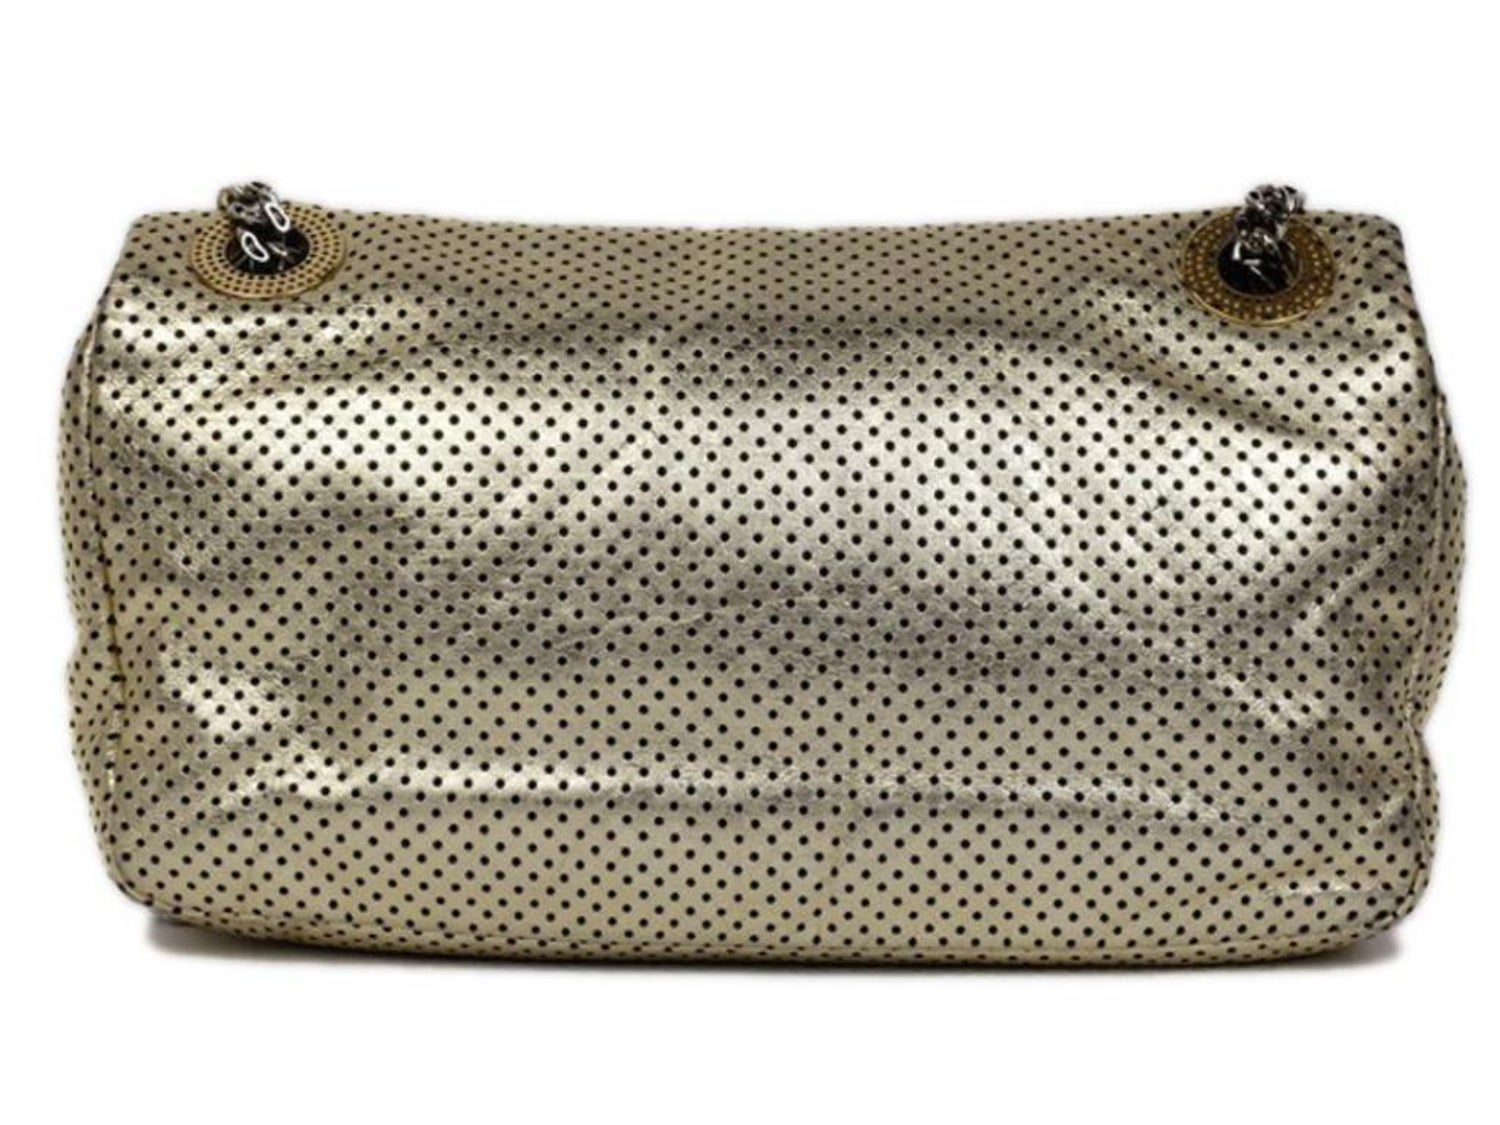 16155ed0bfb3 Chanel Classic Flap ( Rare ) Perforated Drill 215368 Gold Leather Shoulder  Bag For Sale at 1stdibs